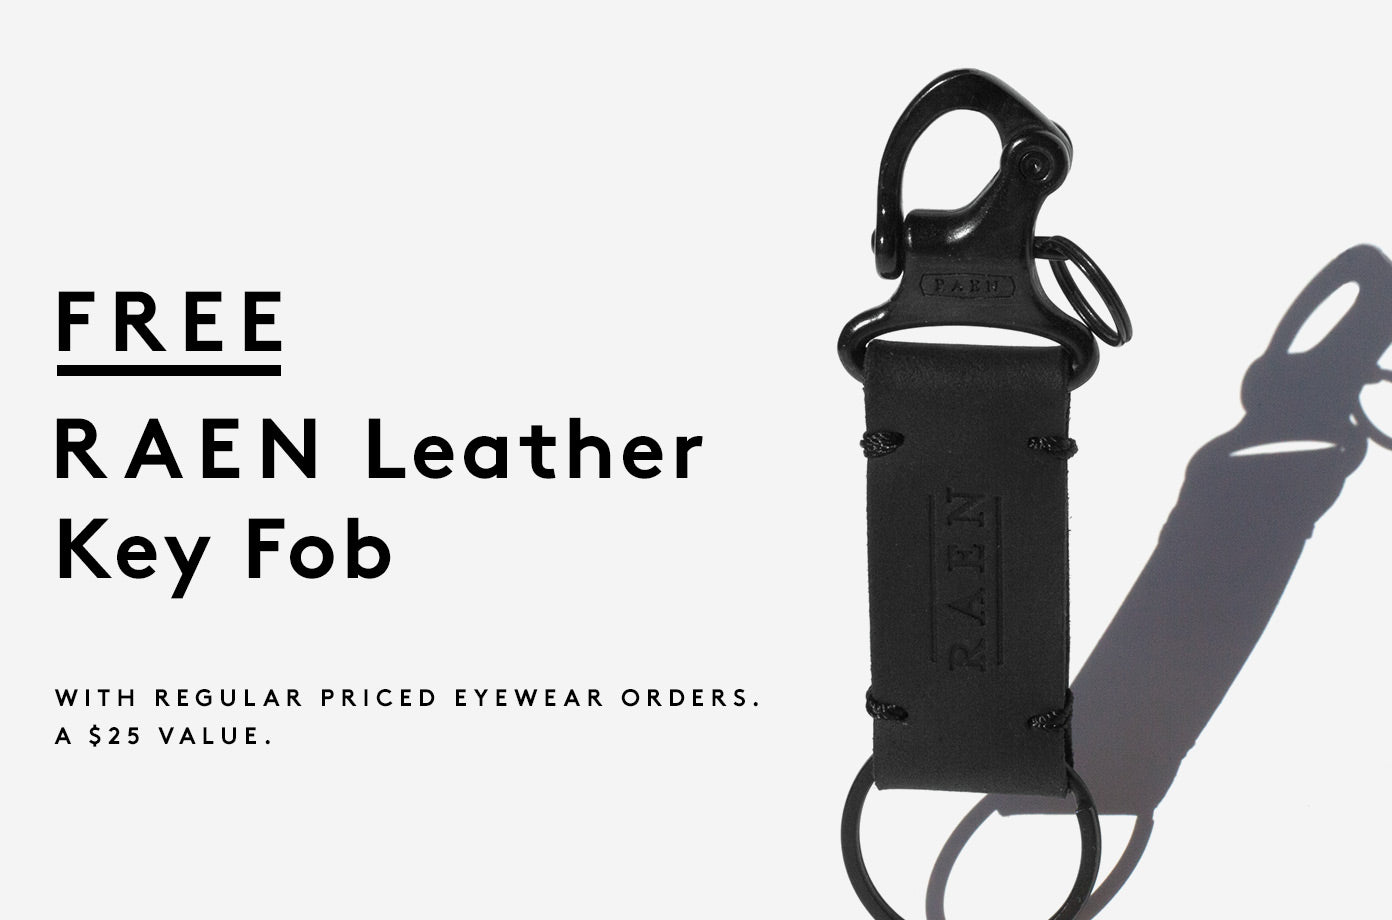 FREE RAEN Leather Key Fob